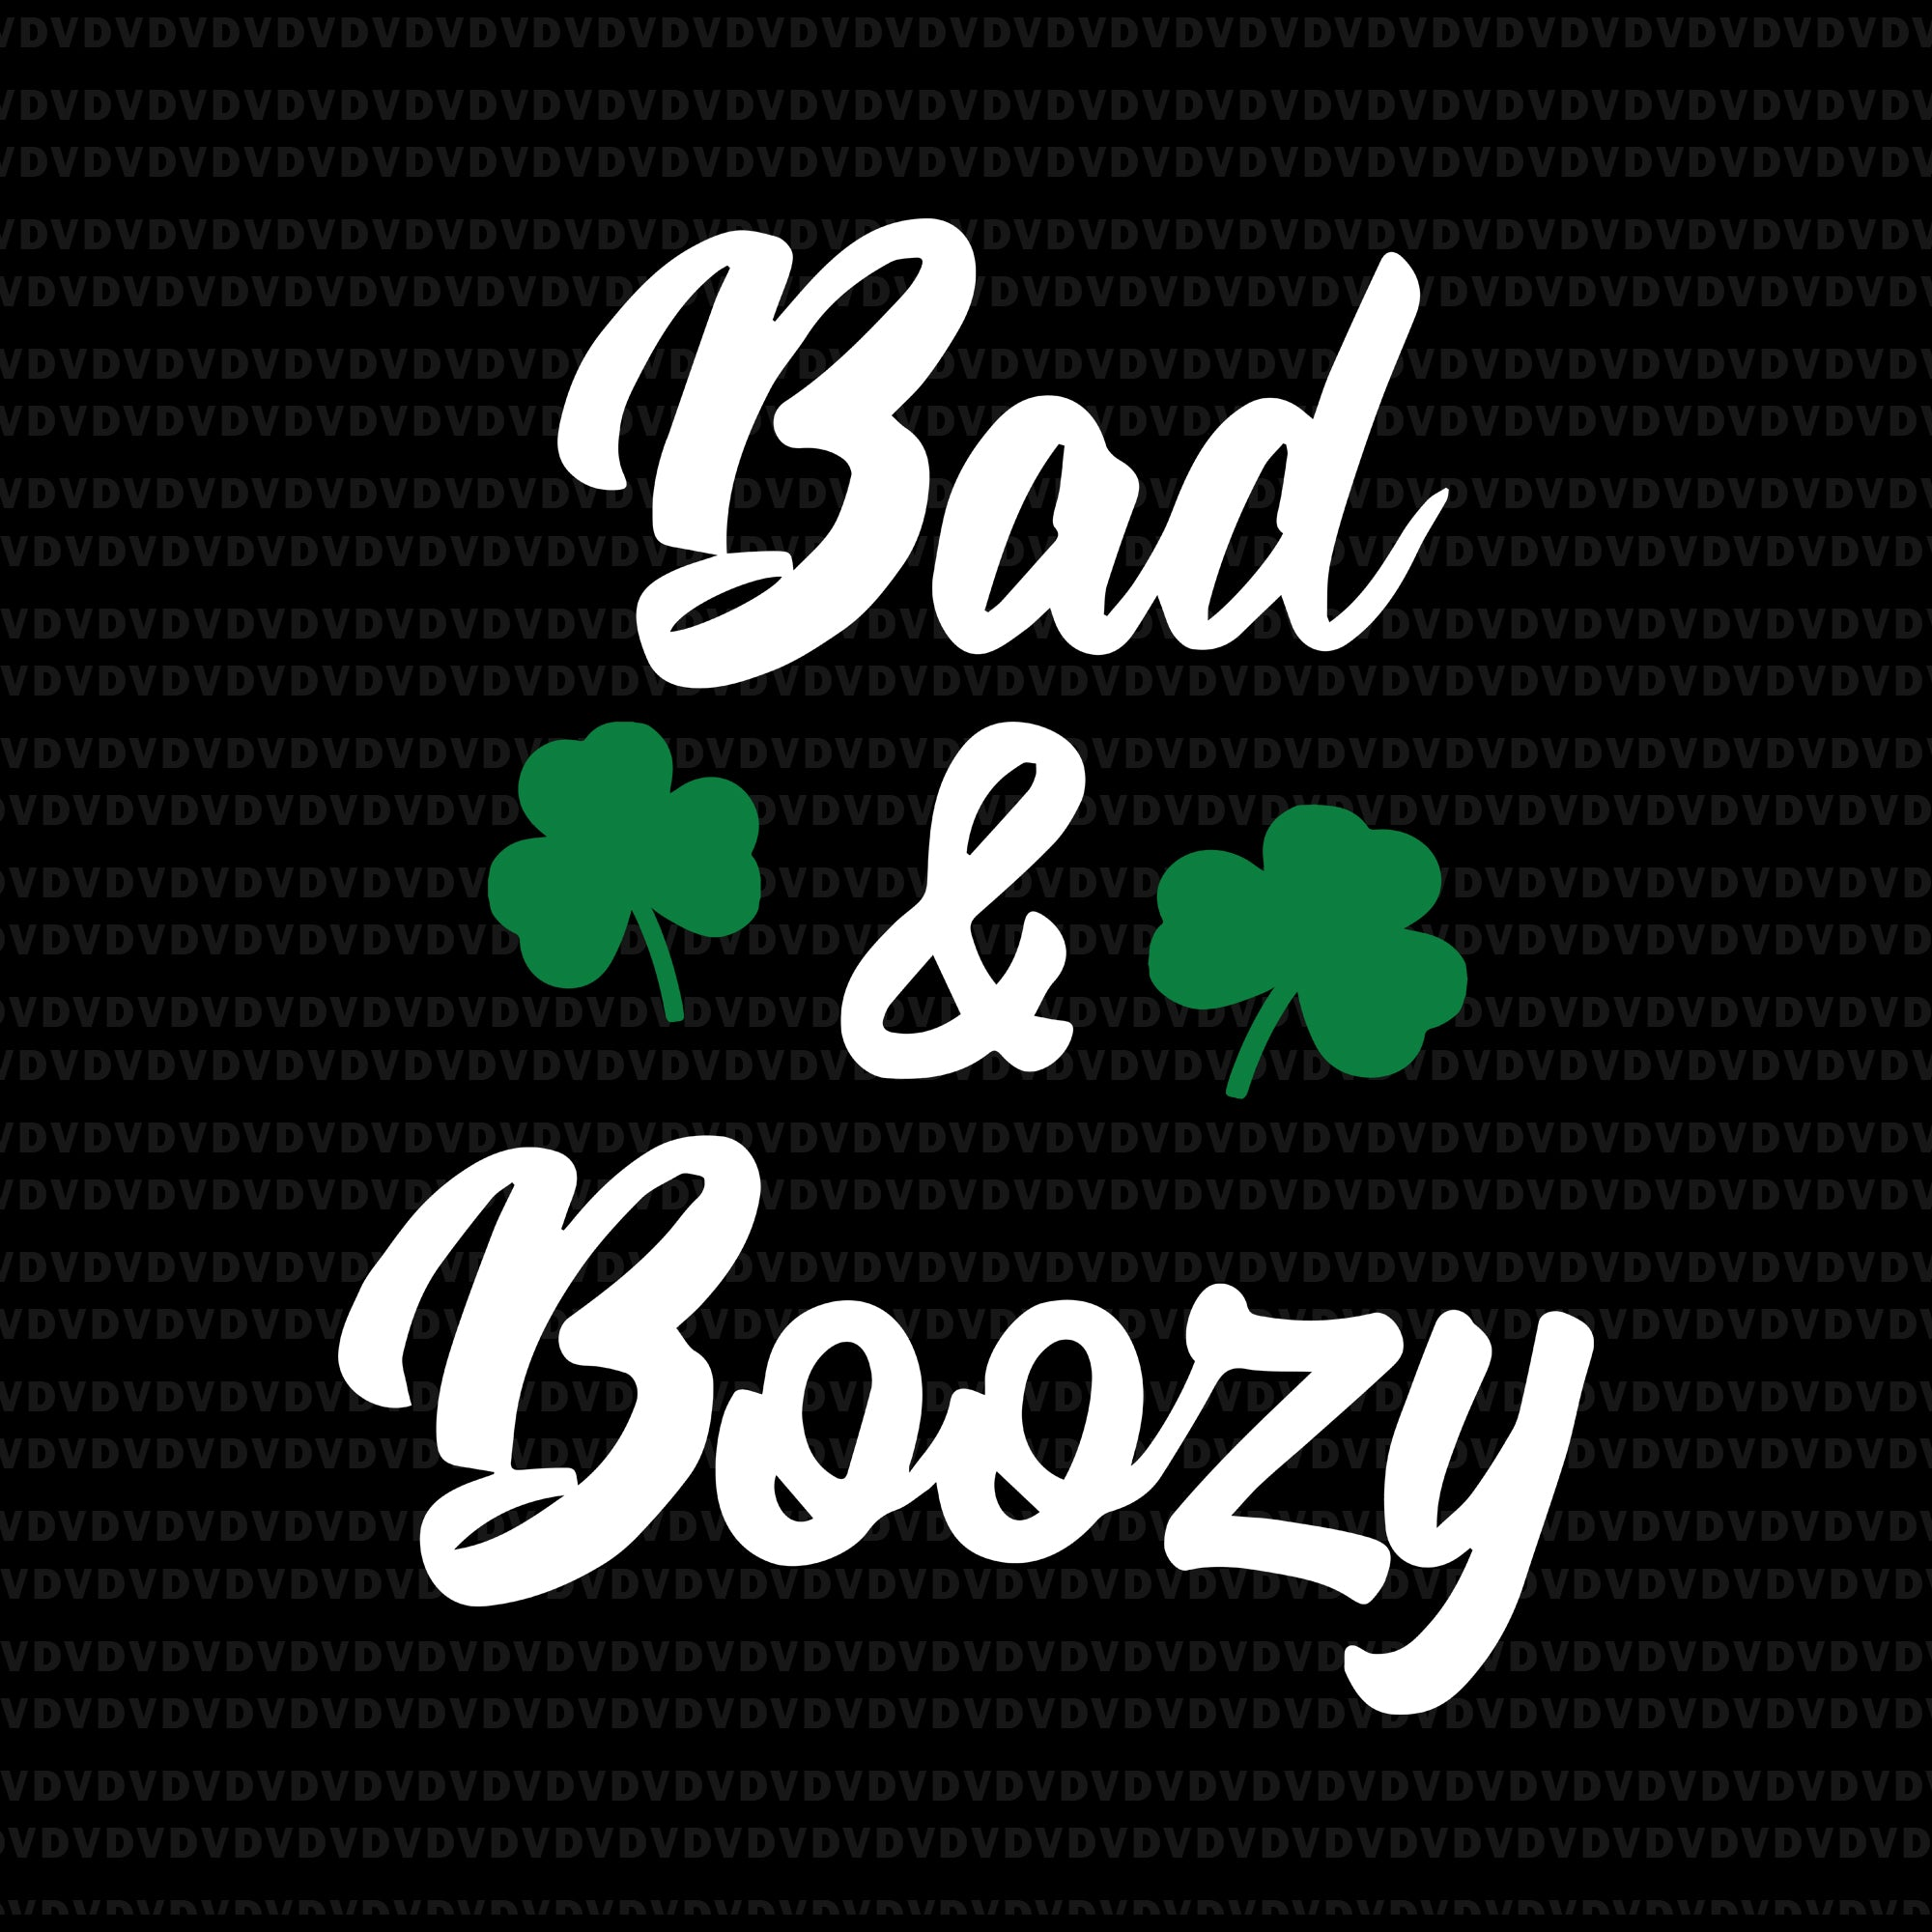 Bad & boozy patrick day svg, bad & boozy patrick day, bad & boozy svg, bad & boozy , st patrick day svg, patrick day